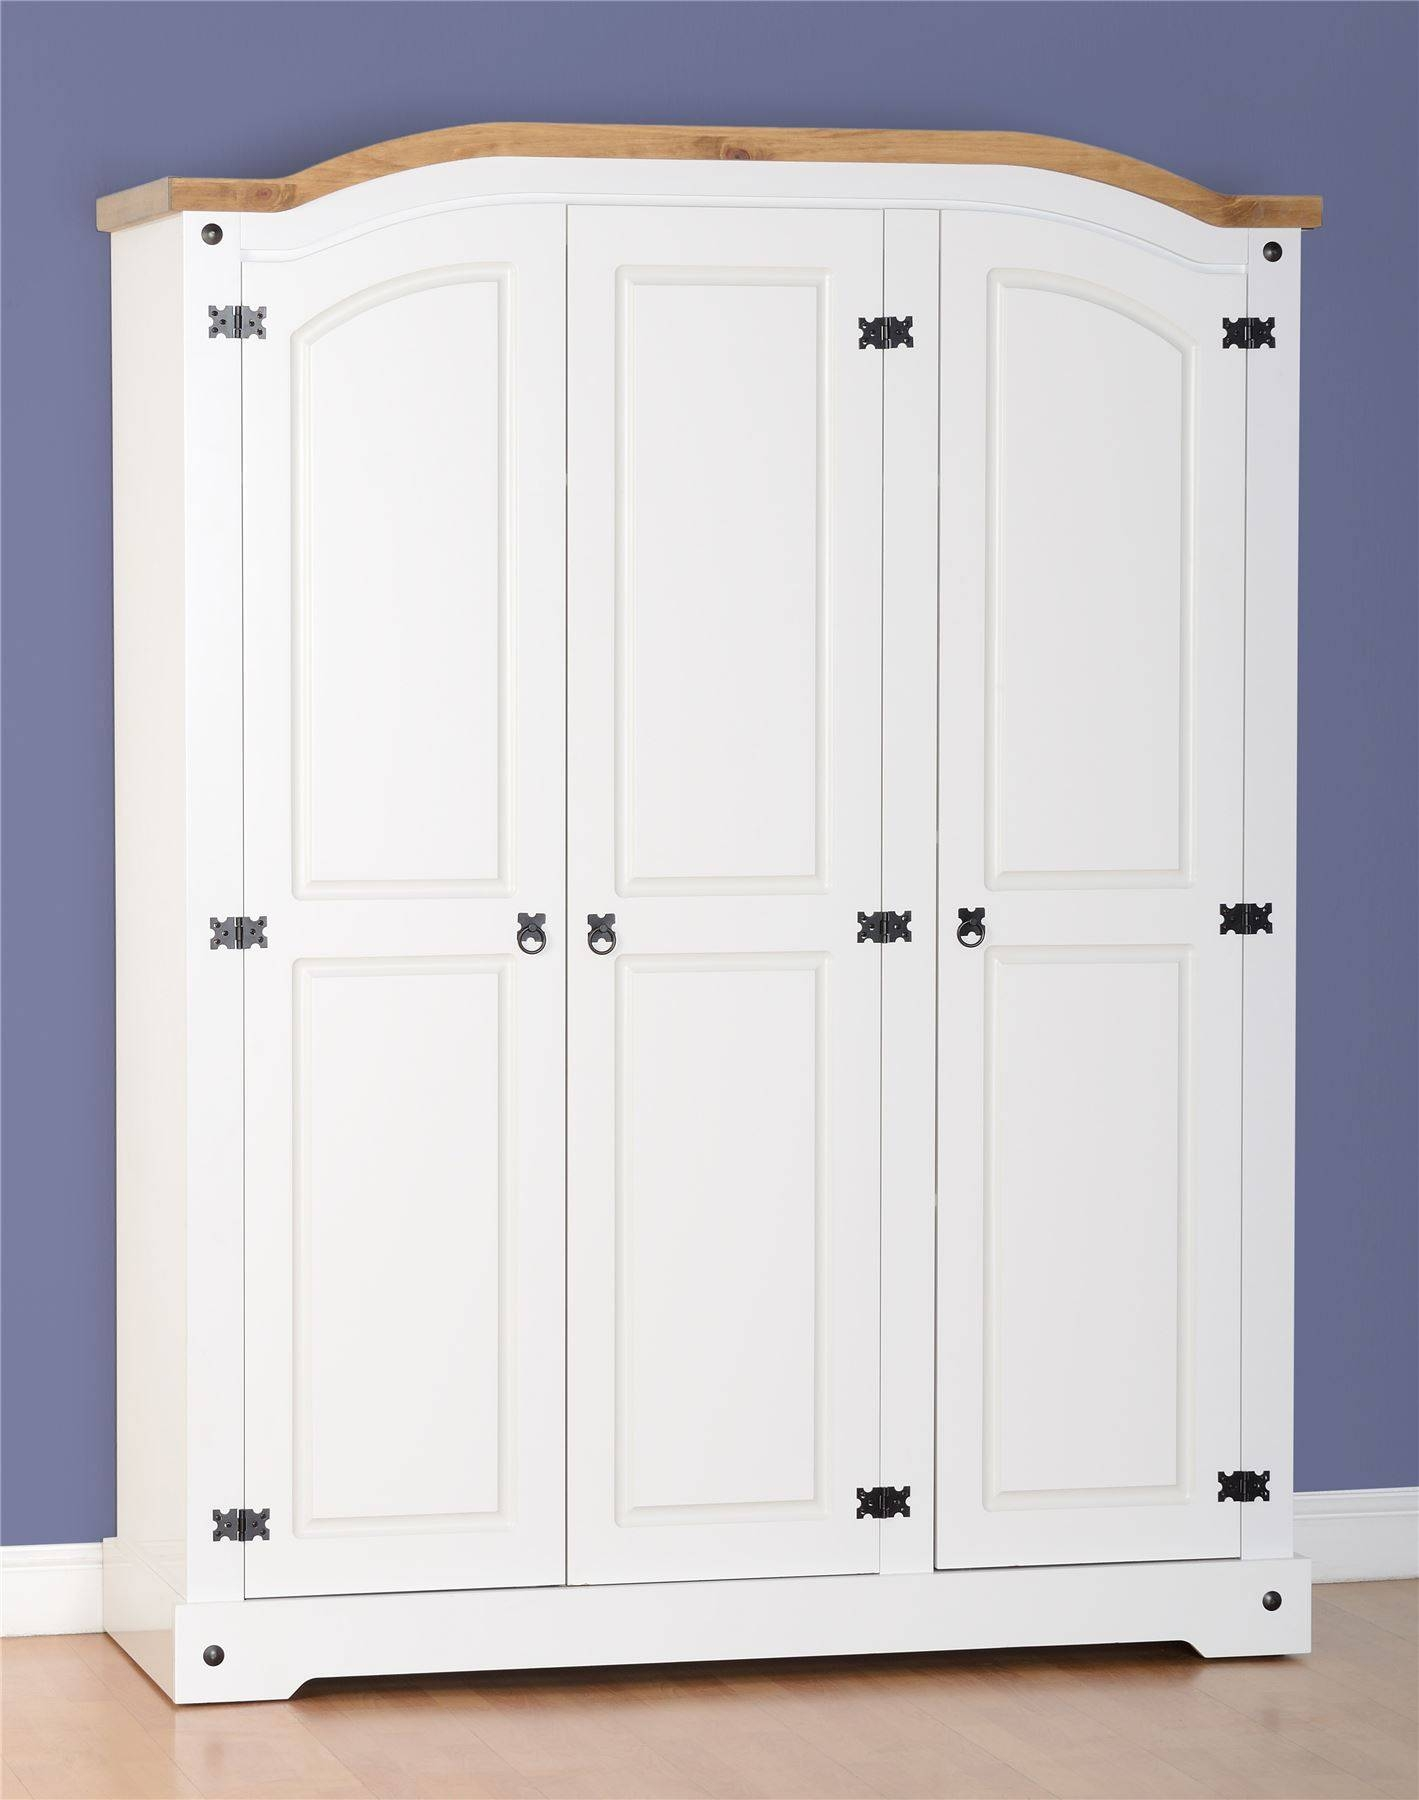 Corona 3 Door Wardrobe In White/distressed Waxed Pine | Ebay In Corona 3 Door Wardrobes (View 10 of 15)